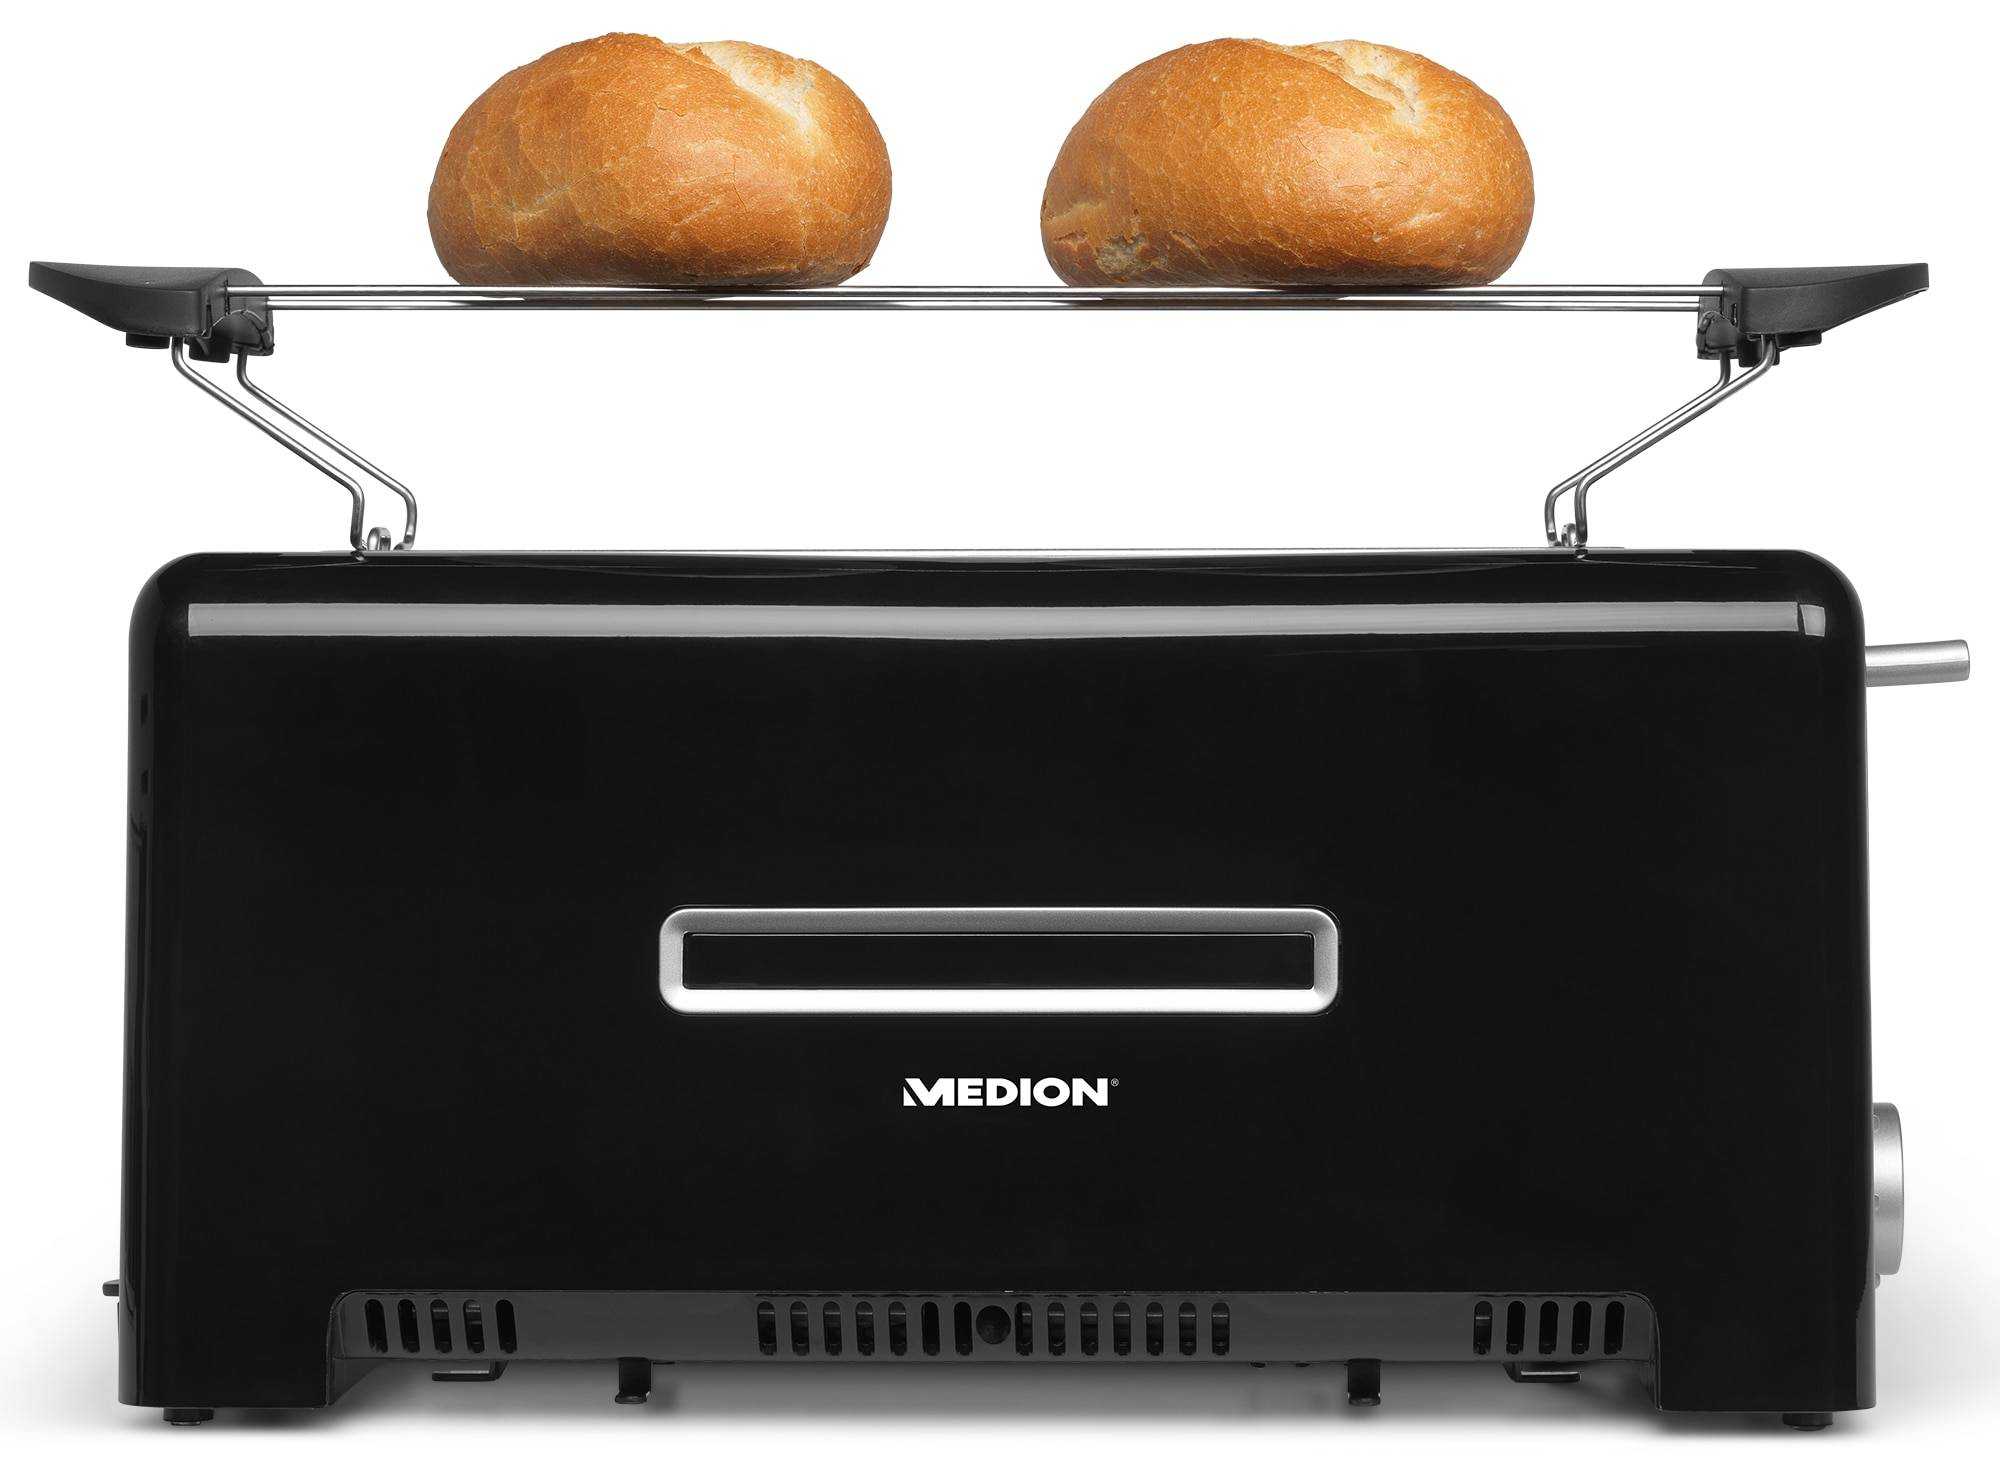 MEDION Grille-pain long double fente (MD 15709)